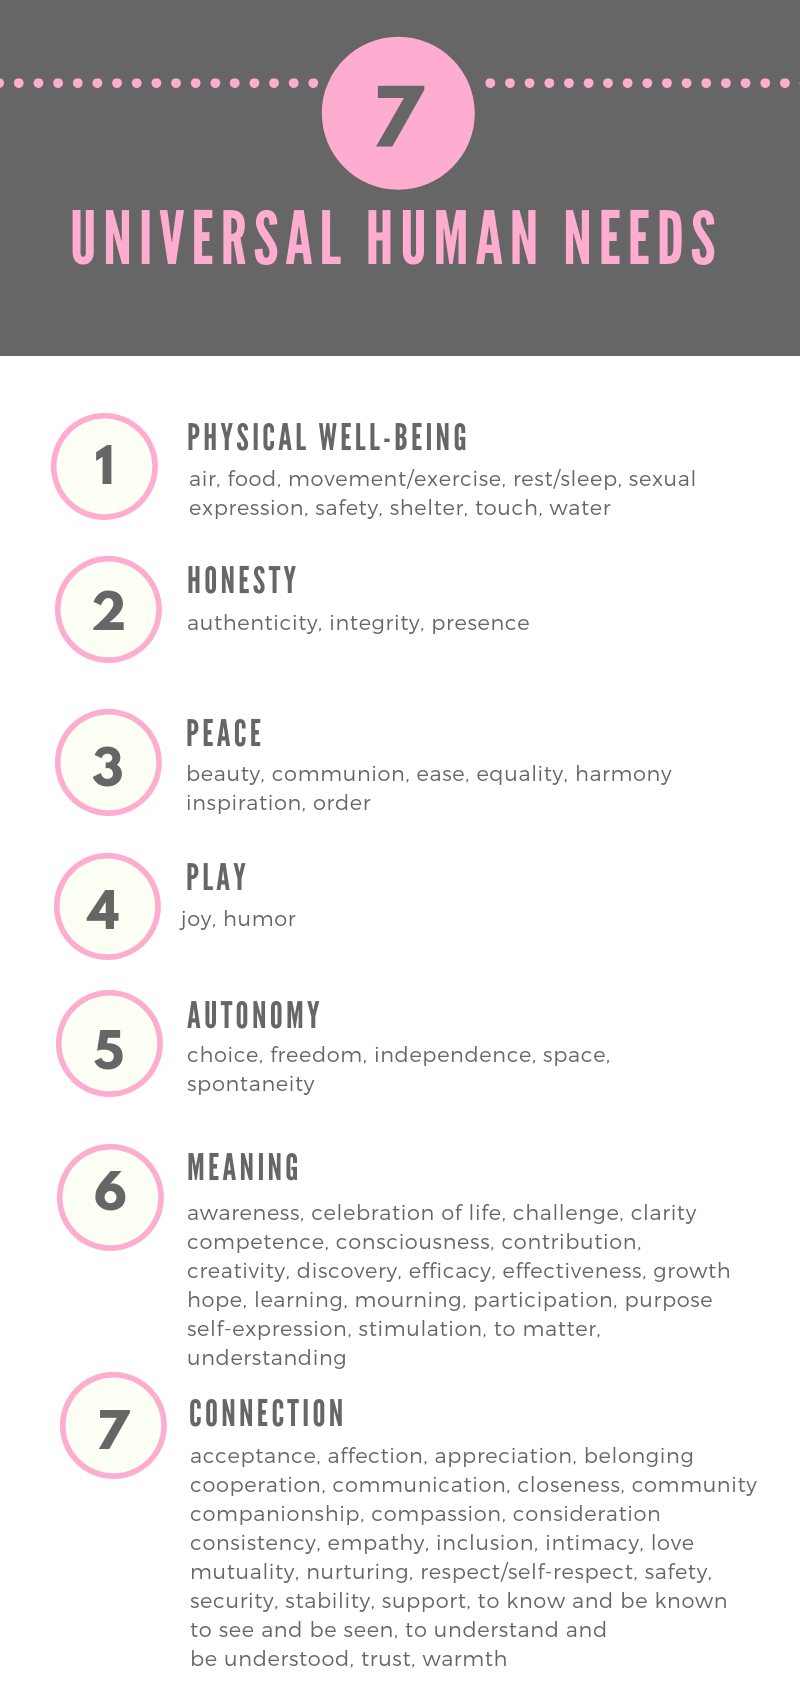 The list of 7 universal human needs - this is what we all need. Nothing but it.